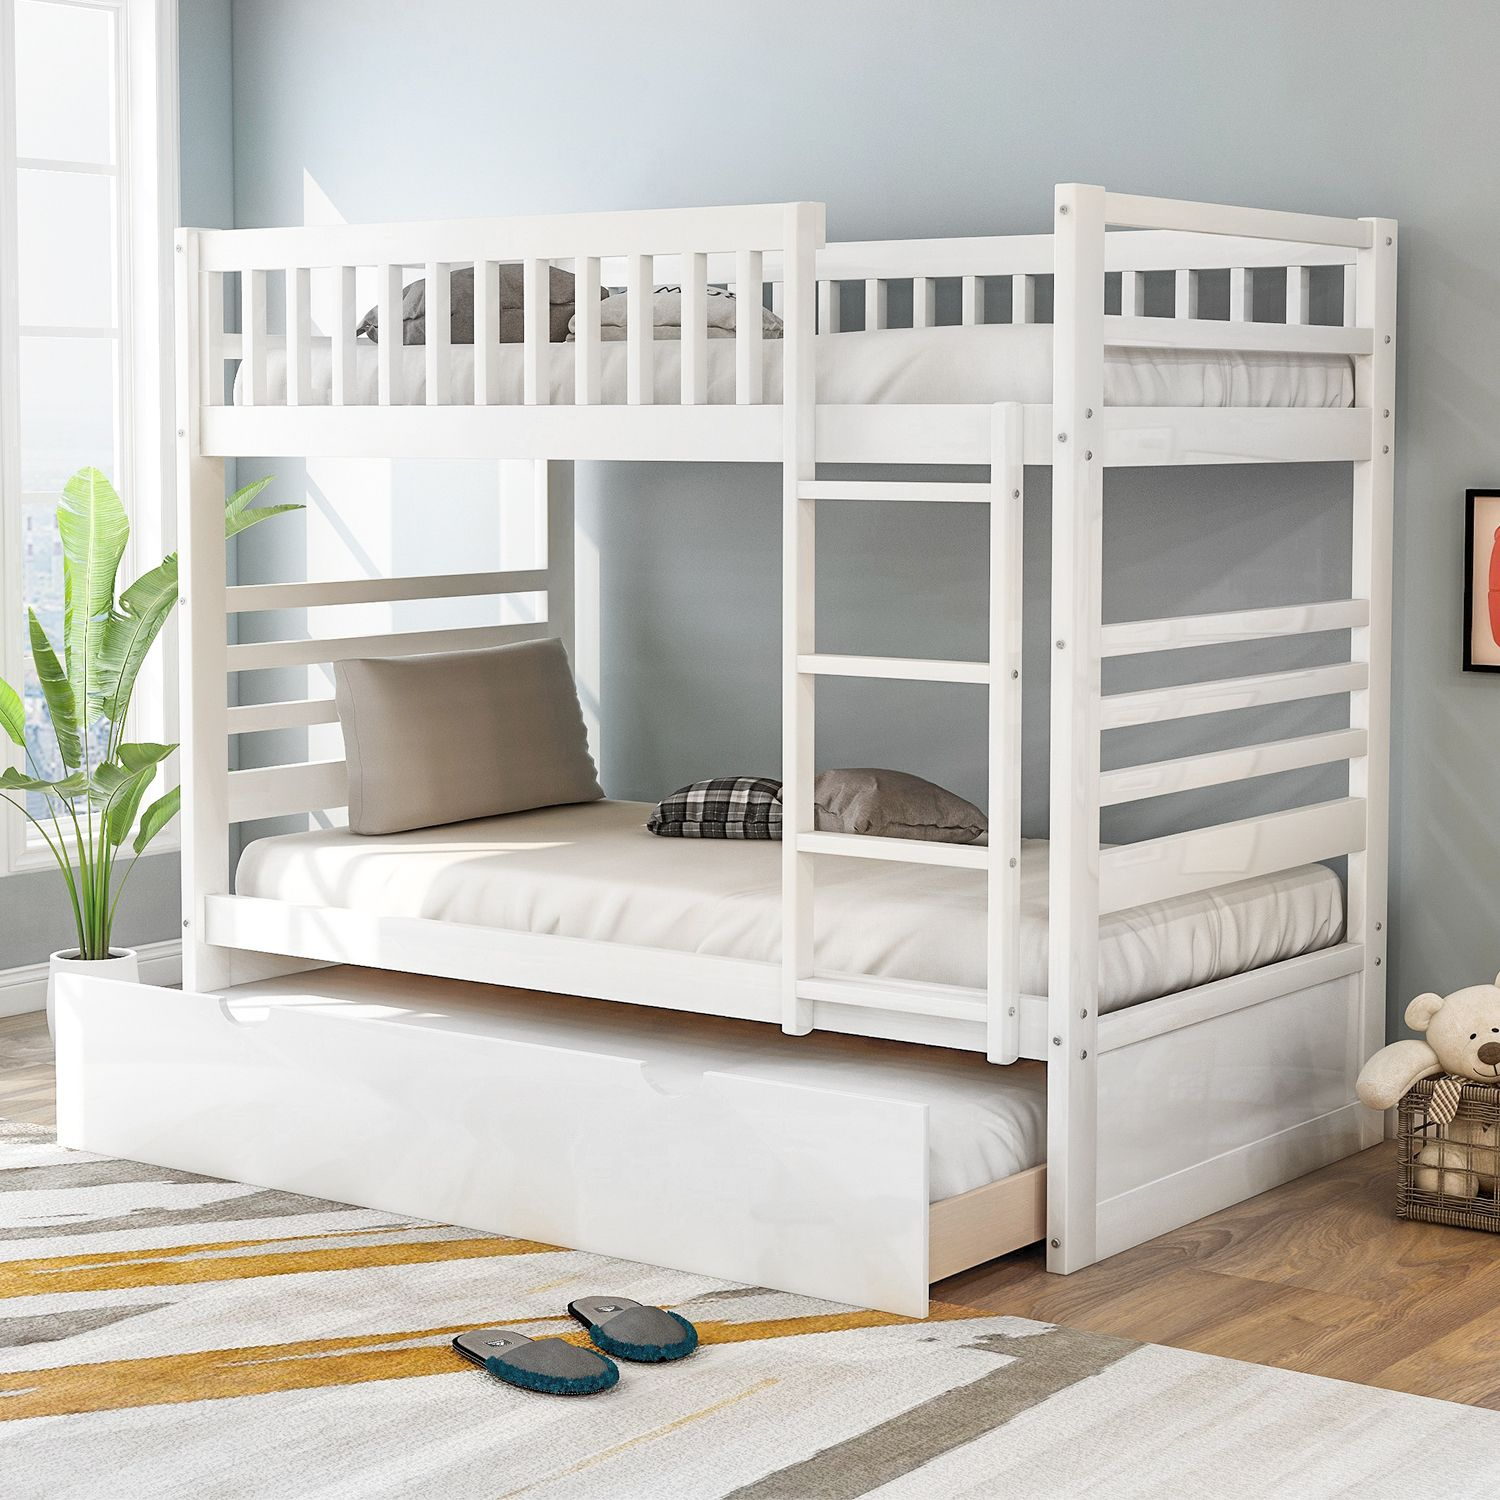 Home In 2020 Bunk Bed With Trundle Solid Wood Bunk Beds Wood